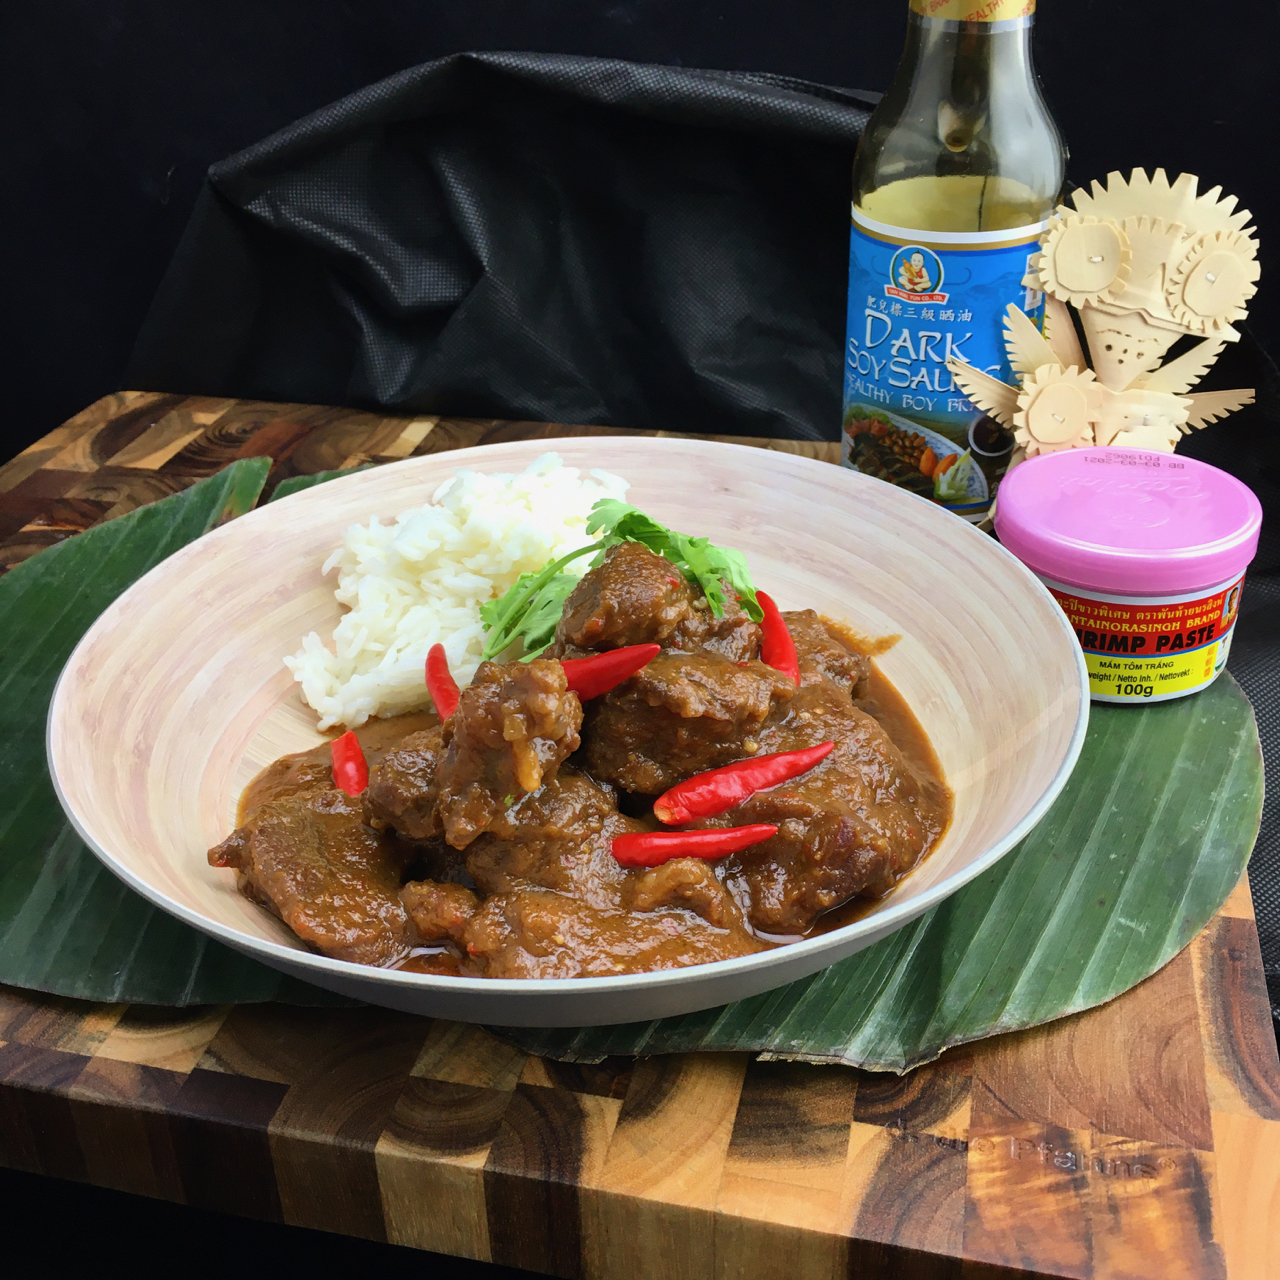 Krengsengan Kambing | Indonesisches Lammgulasch